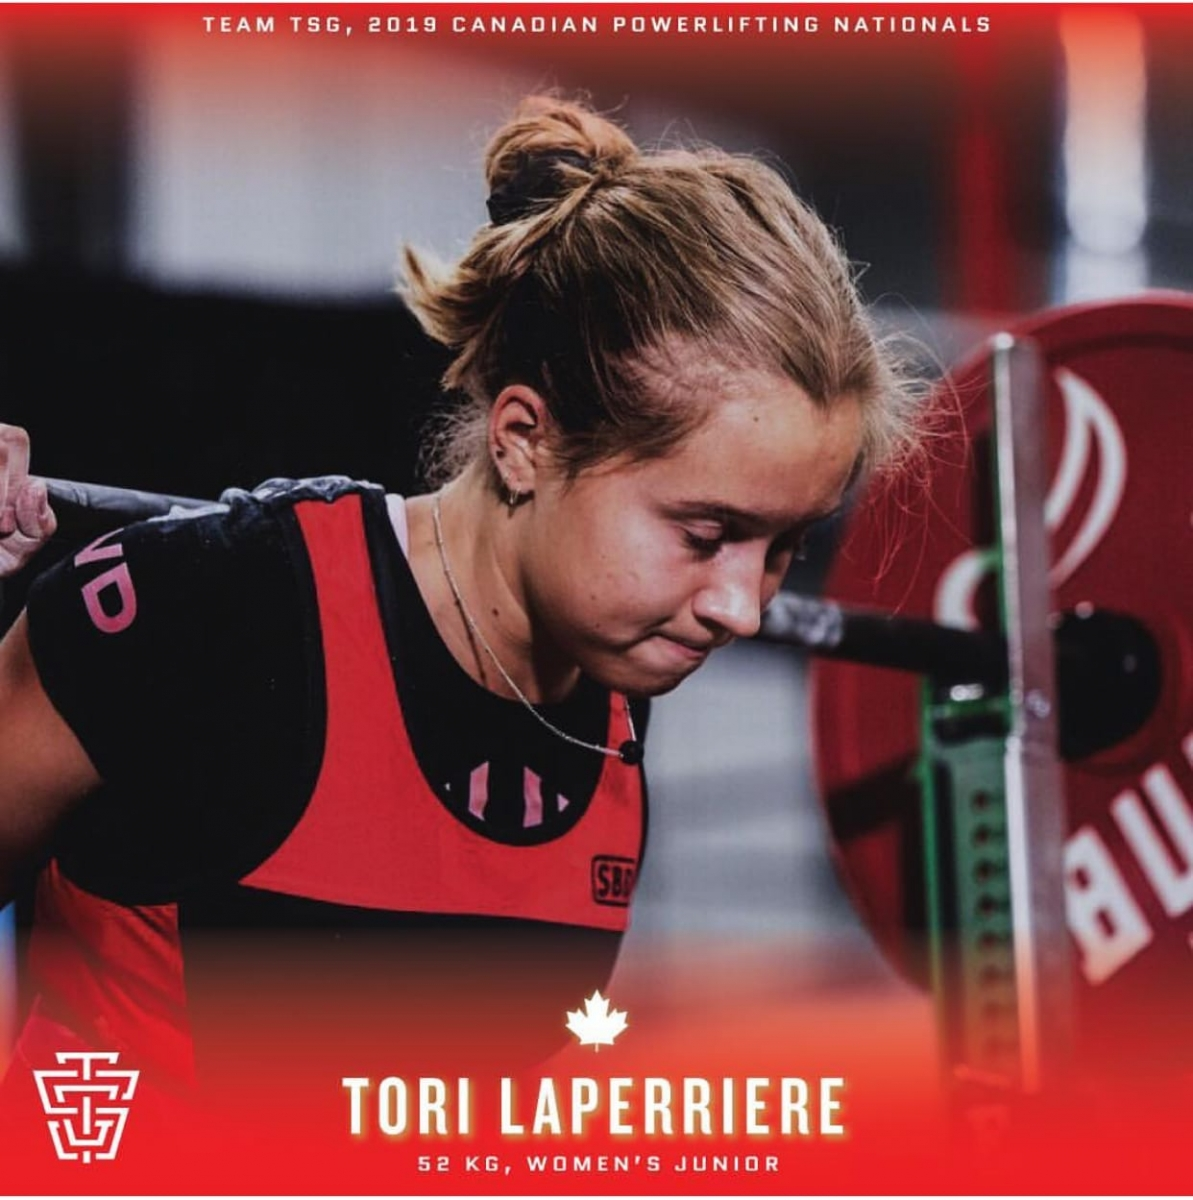 CPU Nationals 2019 Tori Laperriere